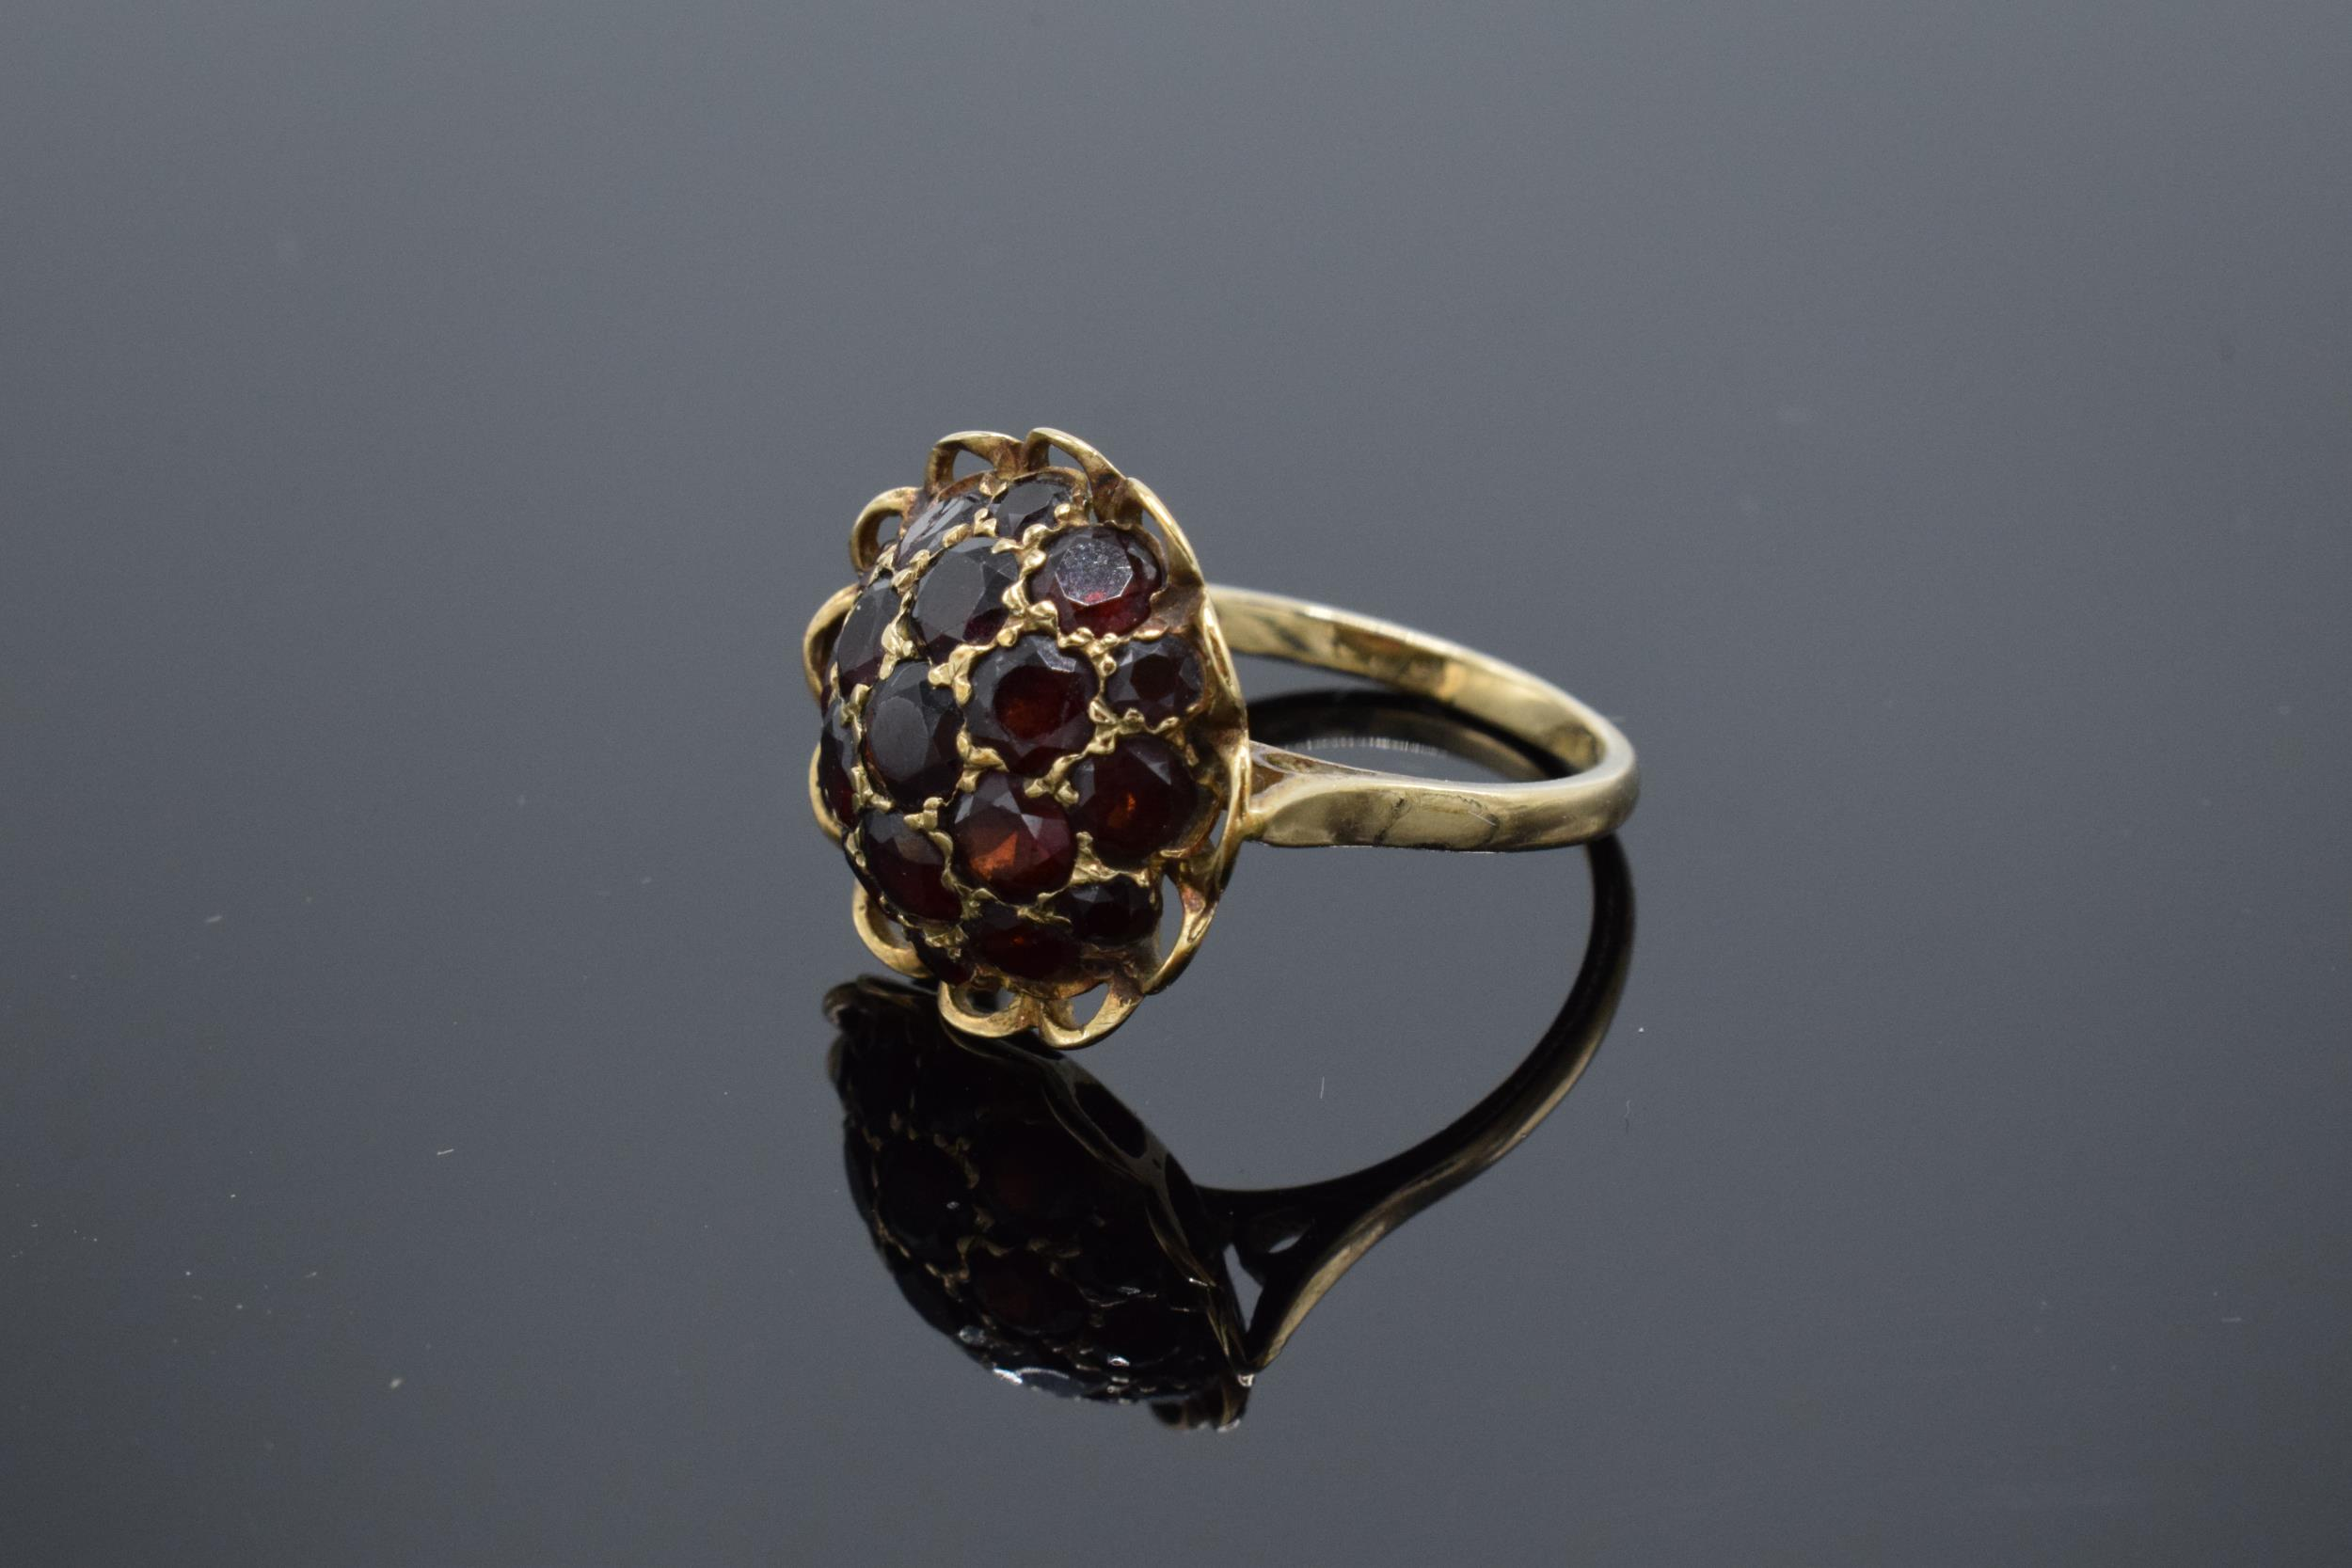 A 9ct gold dress ring set with garnet stones. 3.6 grams. - Image 3 of 4